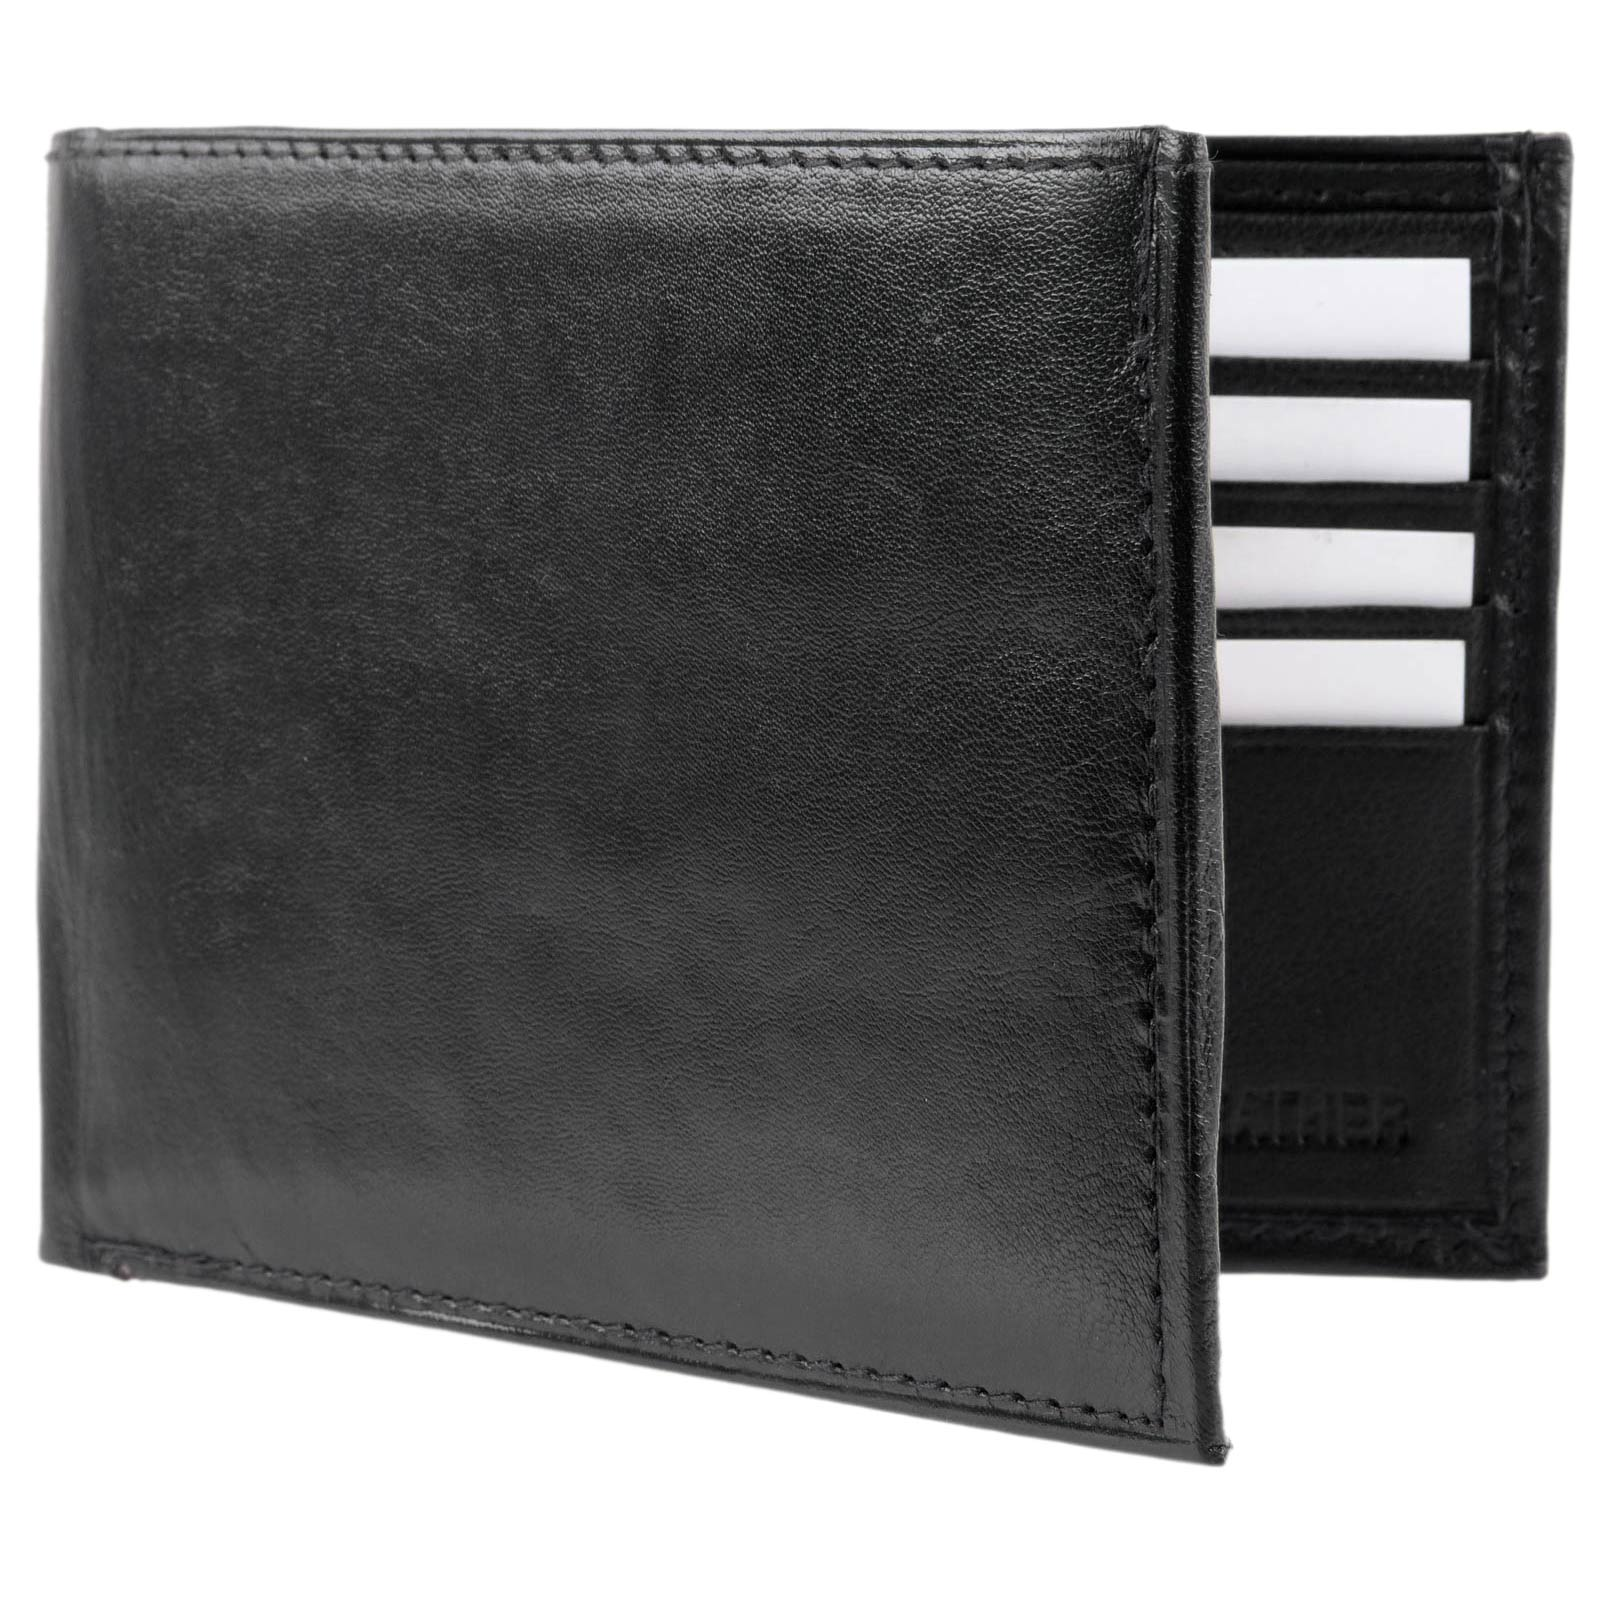 Mens-Quality-Soft-Nappa-LEATHER-Bi-Fold-Wallet-by-Oakridge thumbnail 4